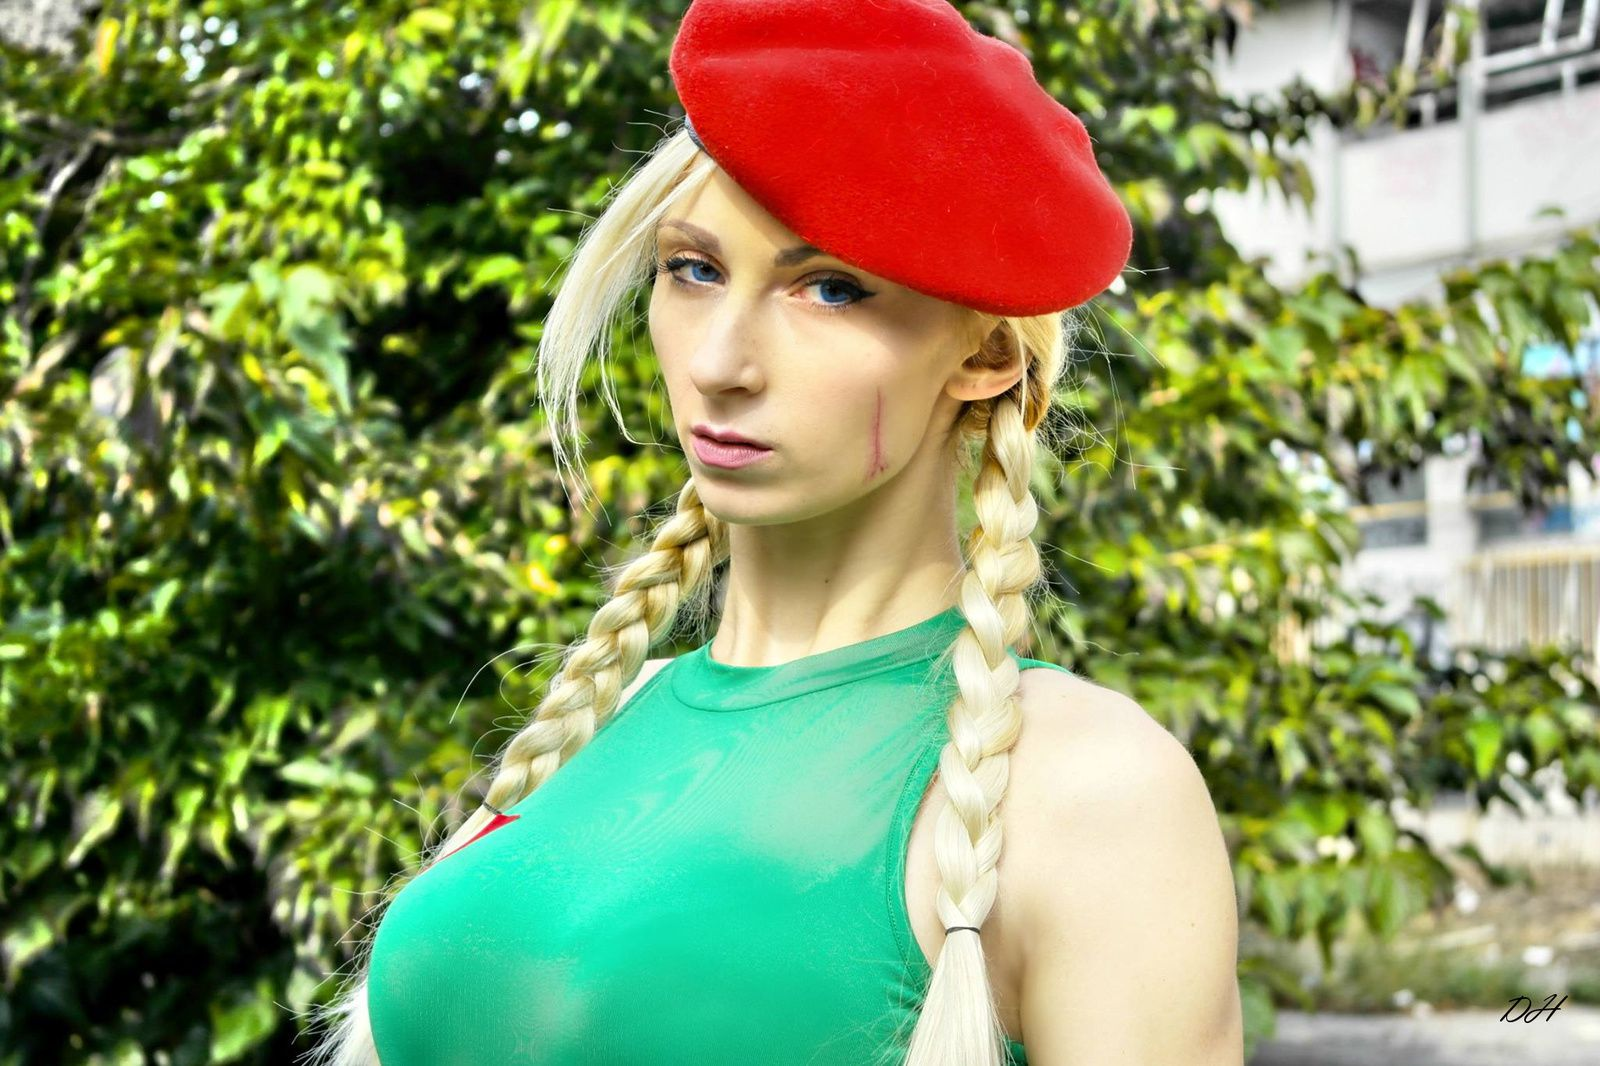 Les Shootings de Jill #1 &quot&#x3B;Cammy&quot&#x3B;